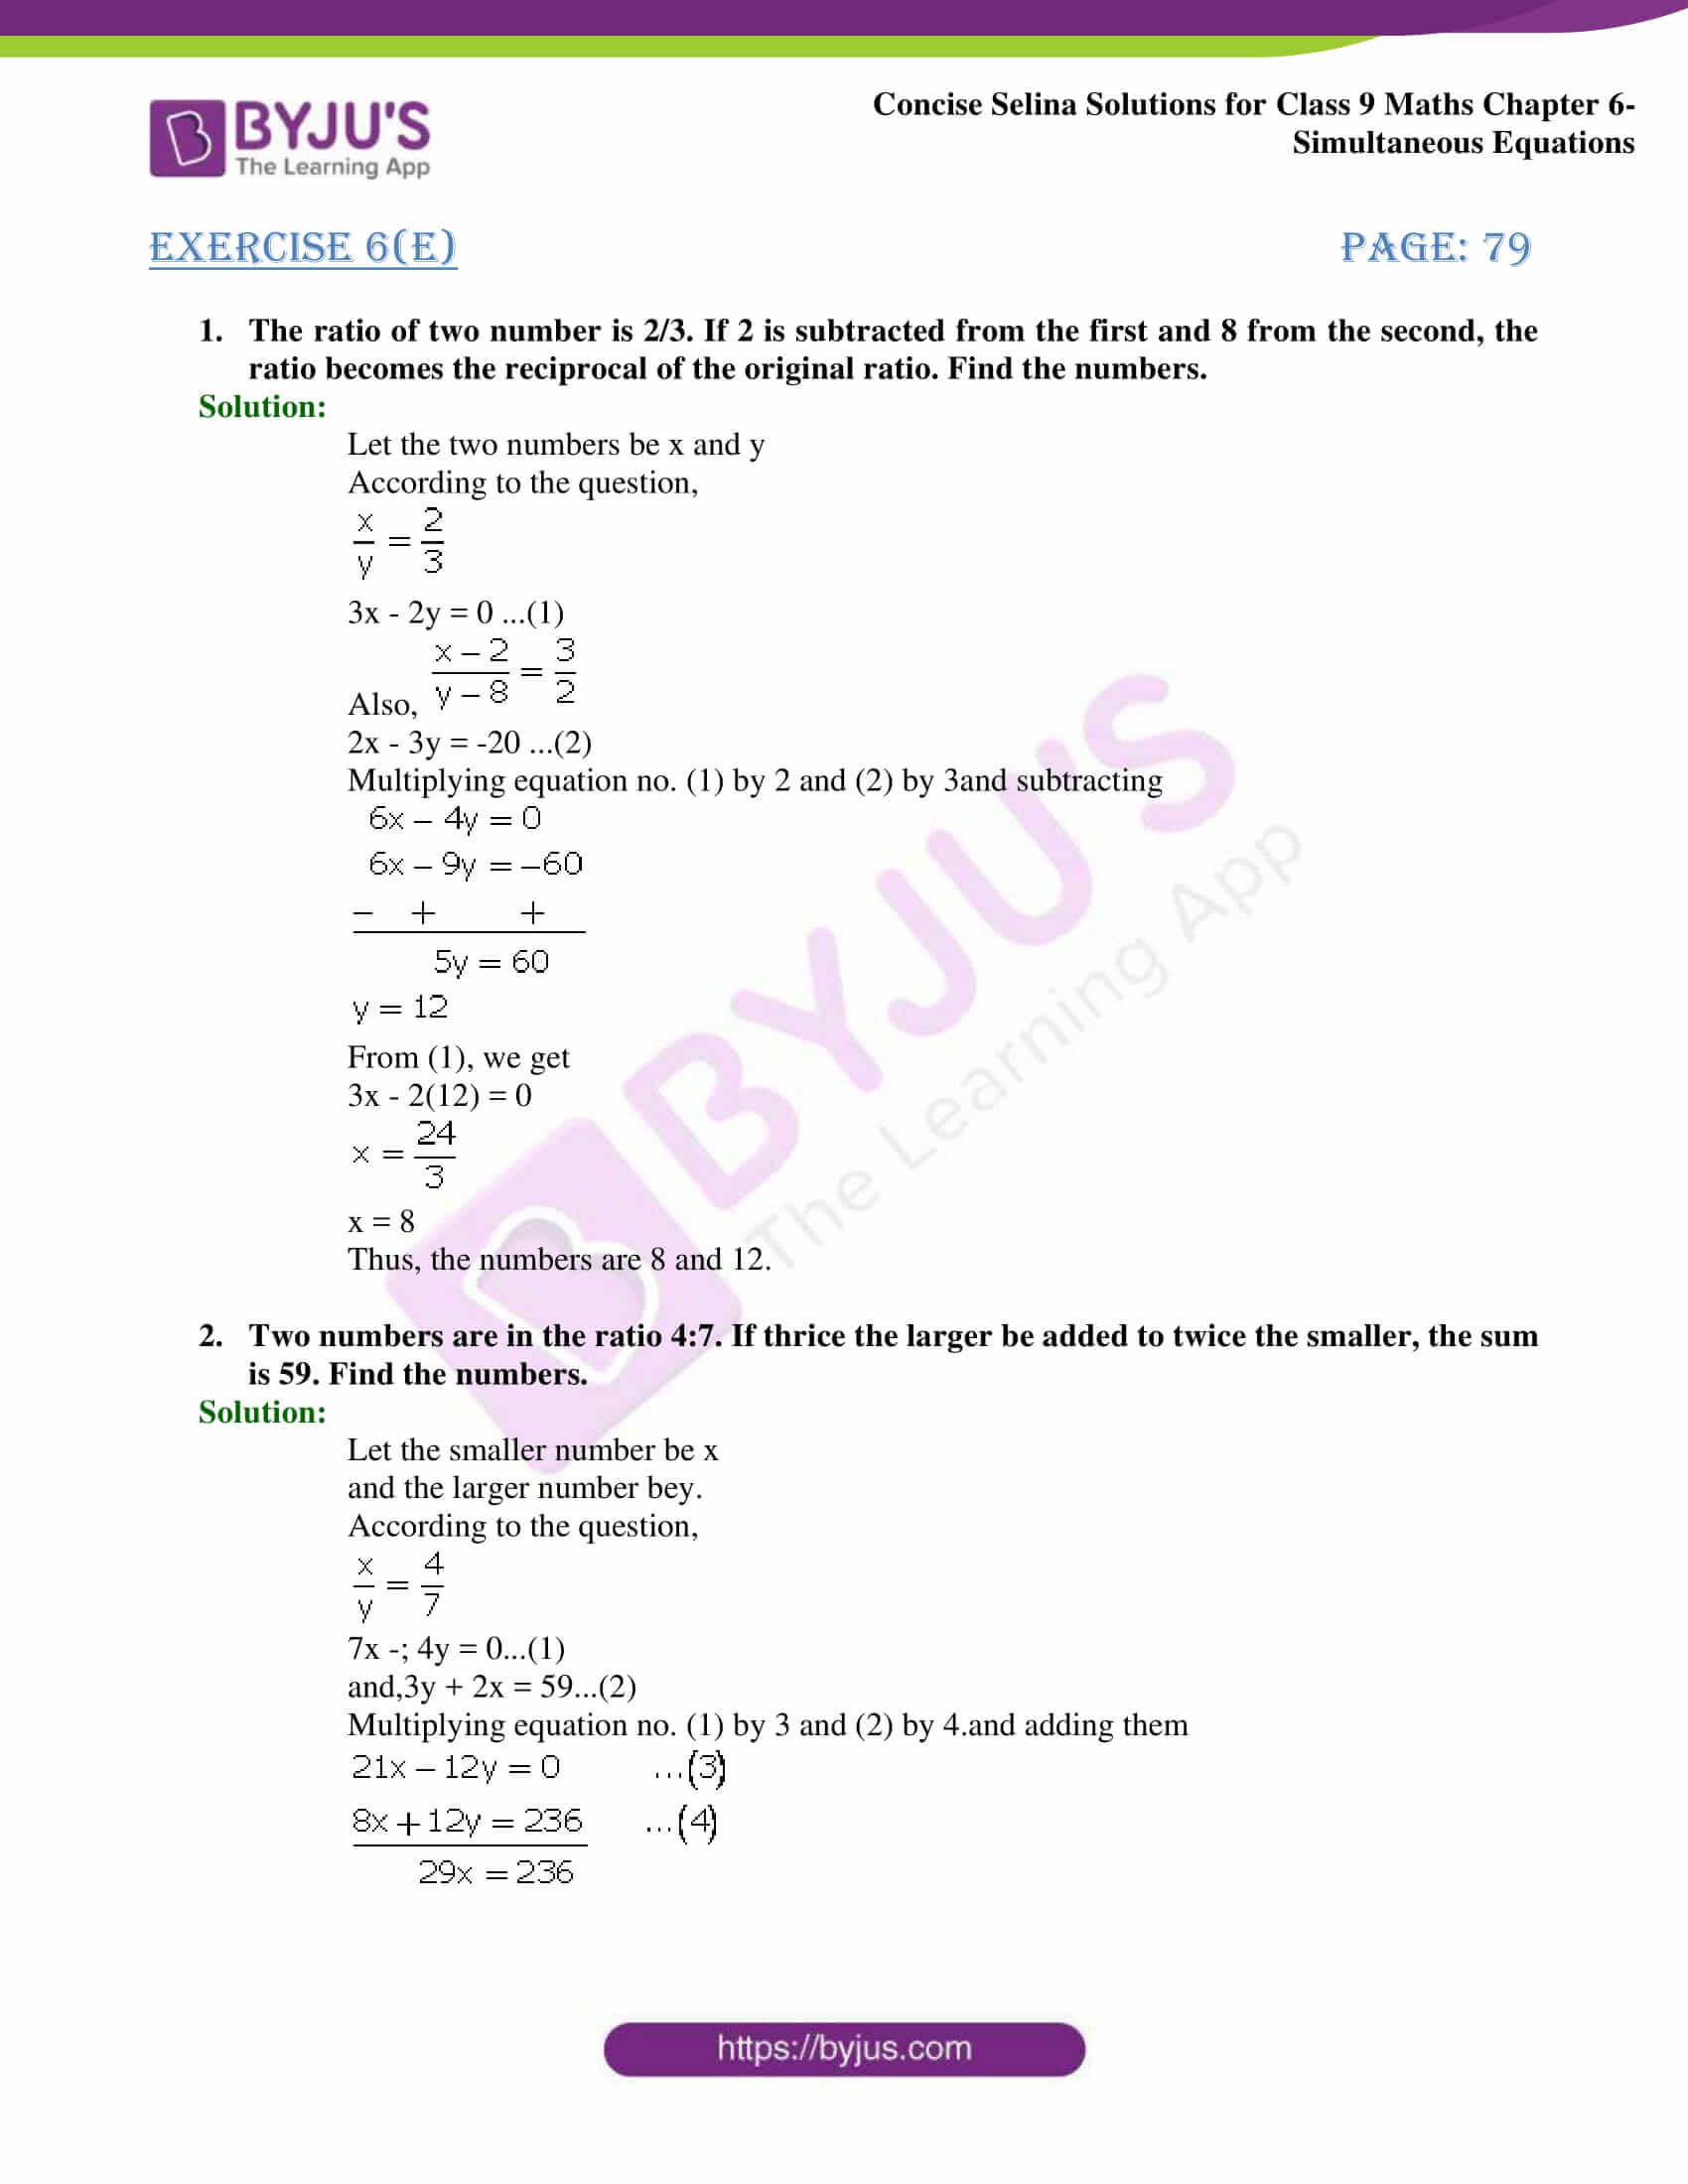 Selina Solutions Class 9 Maths Chapter 6 Simultaneous Equations part 37